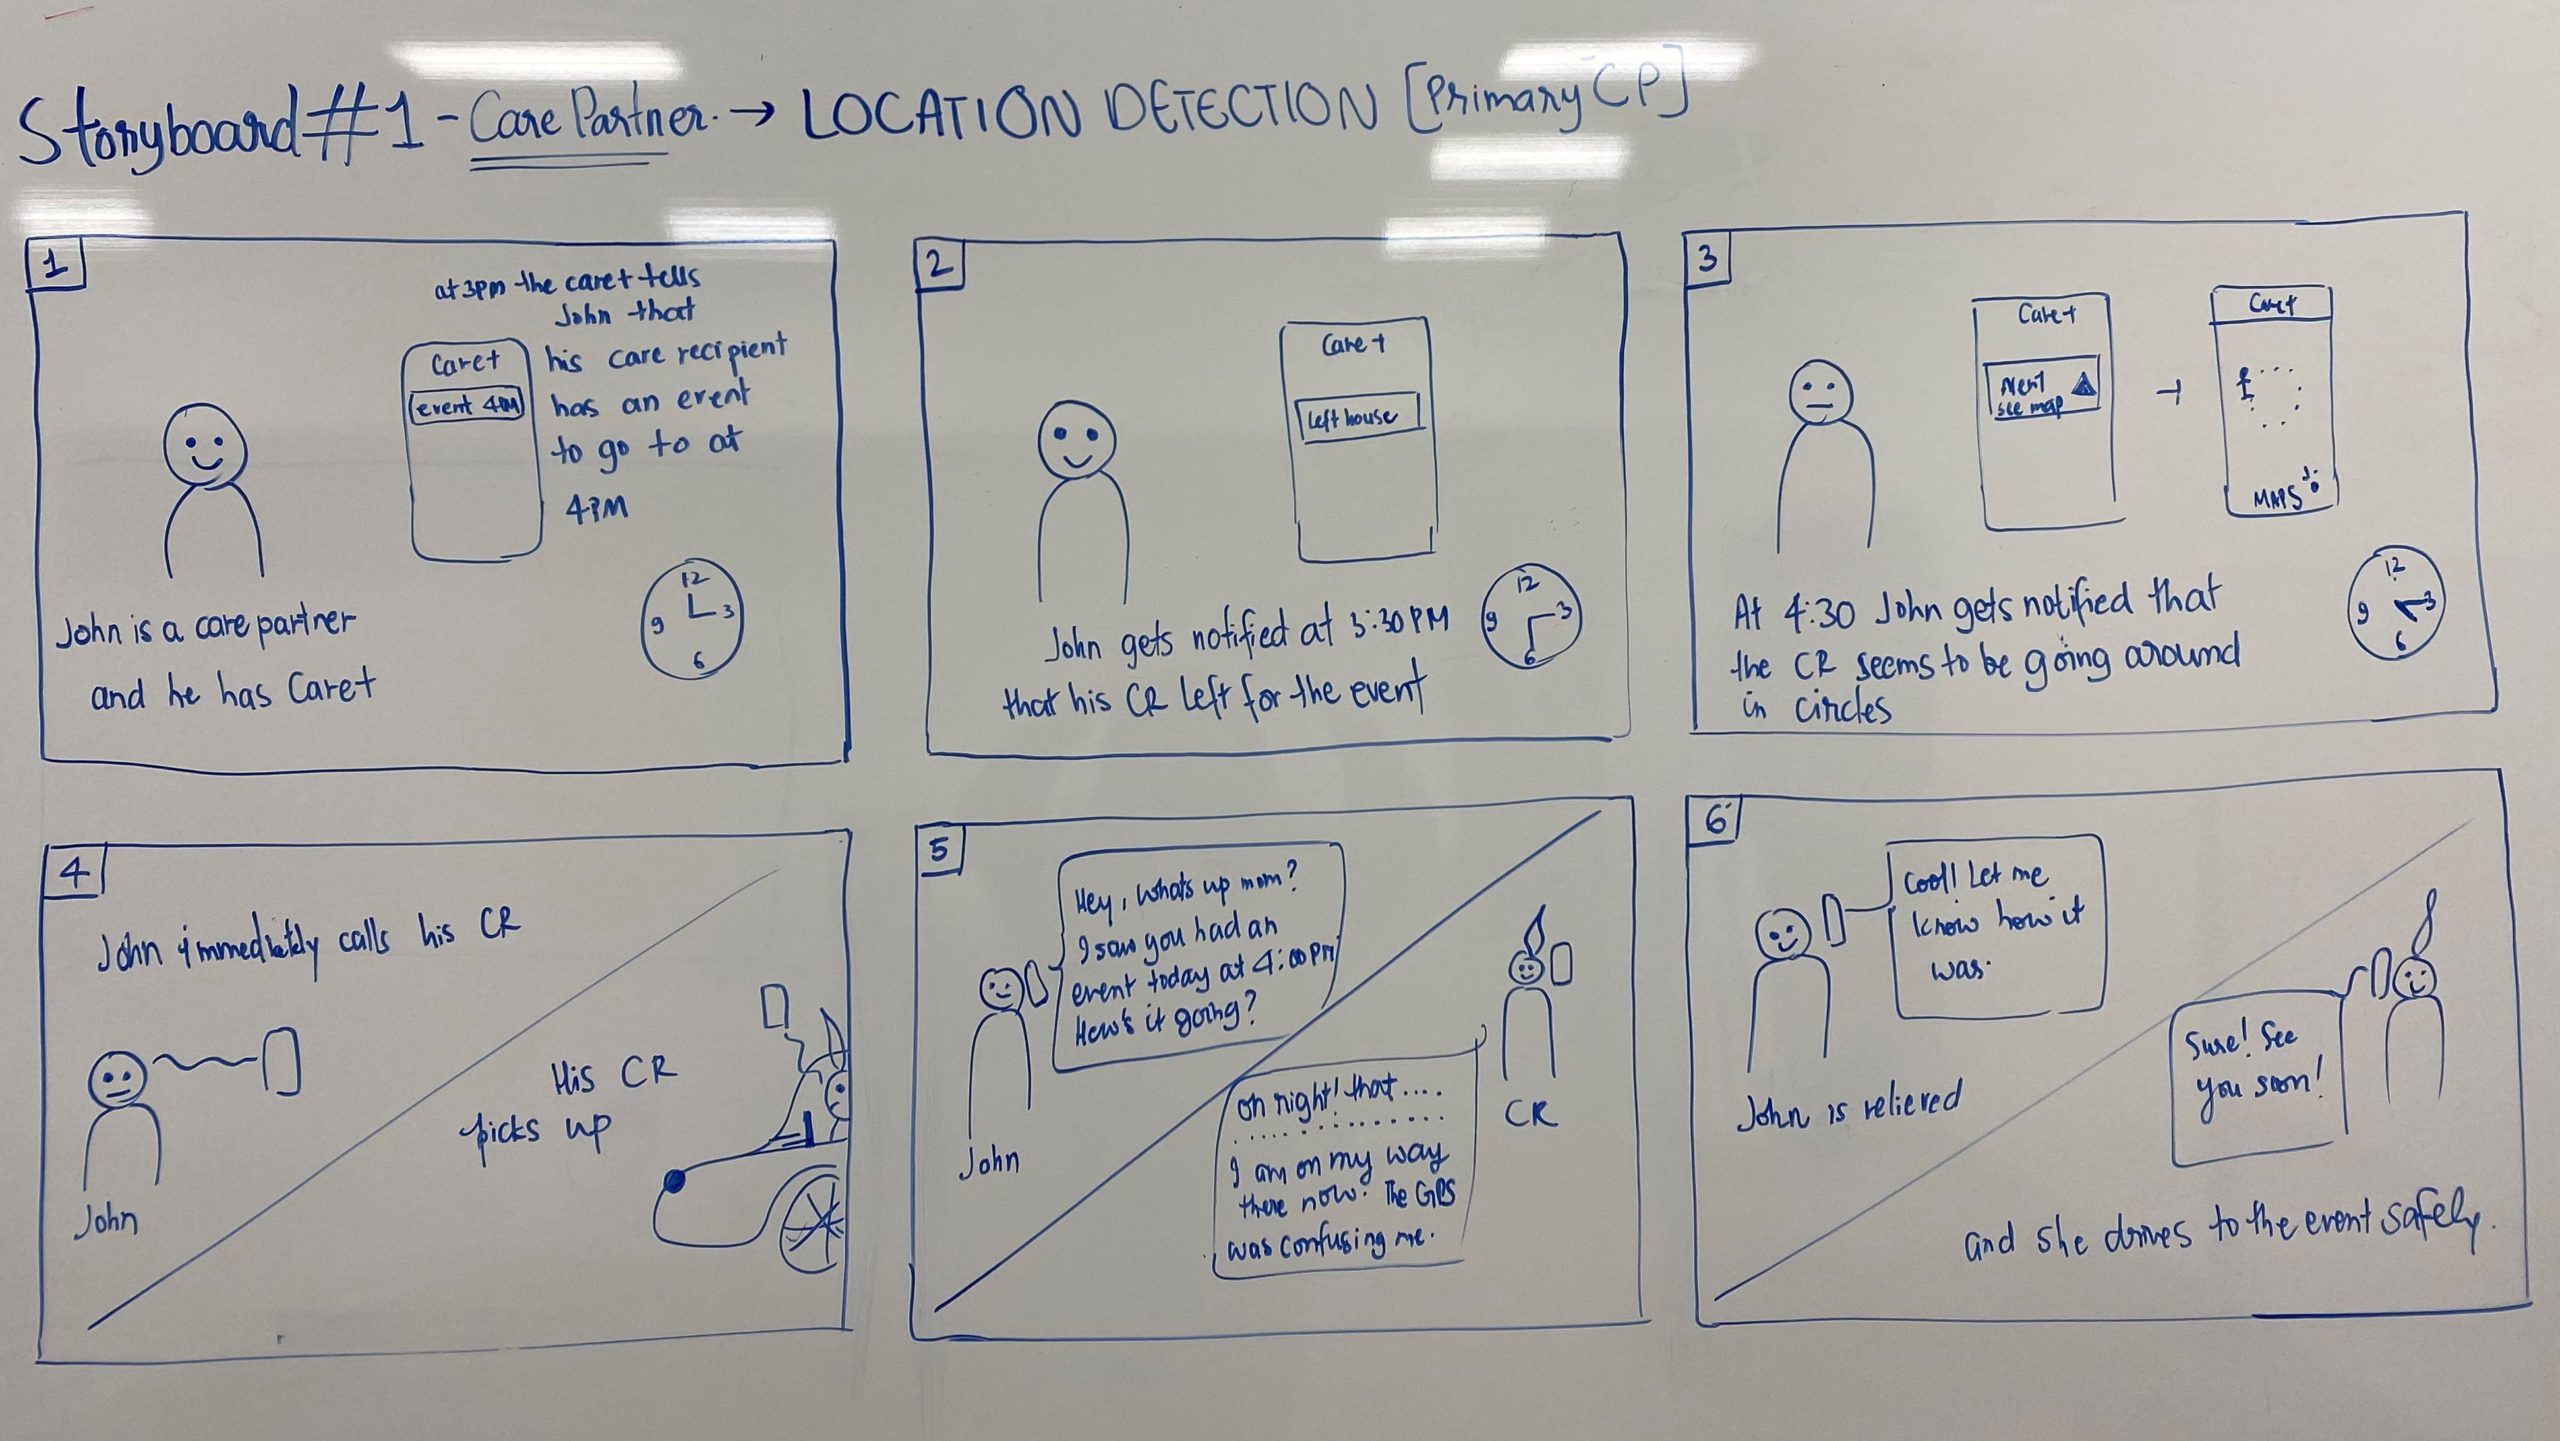 CP-Location-Detection-2